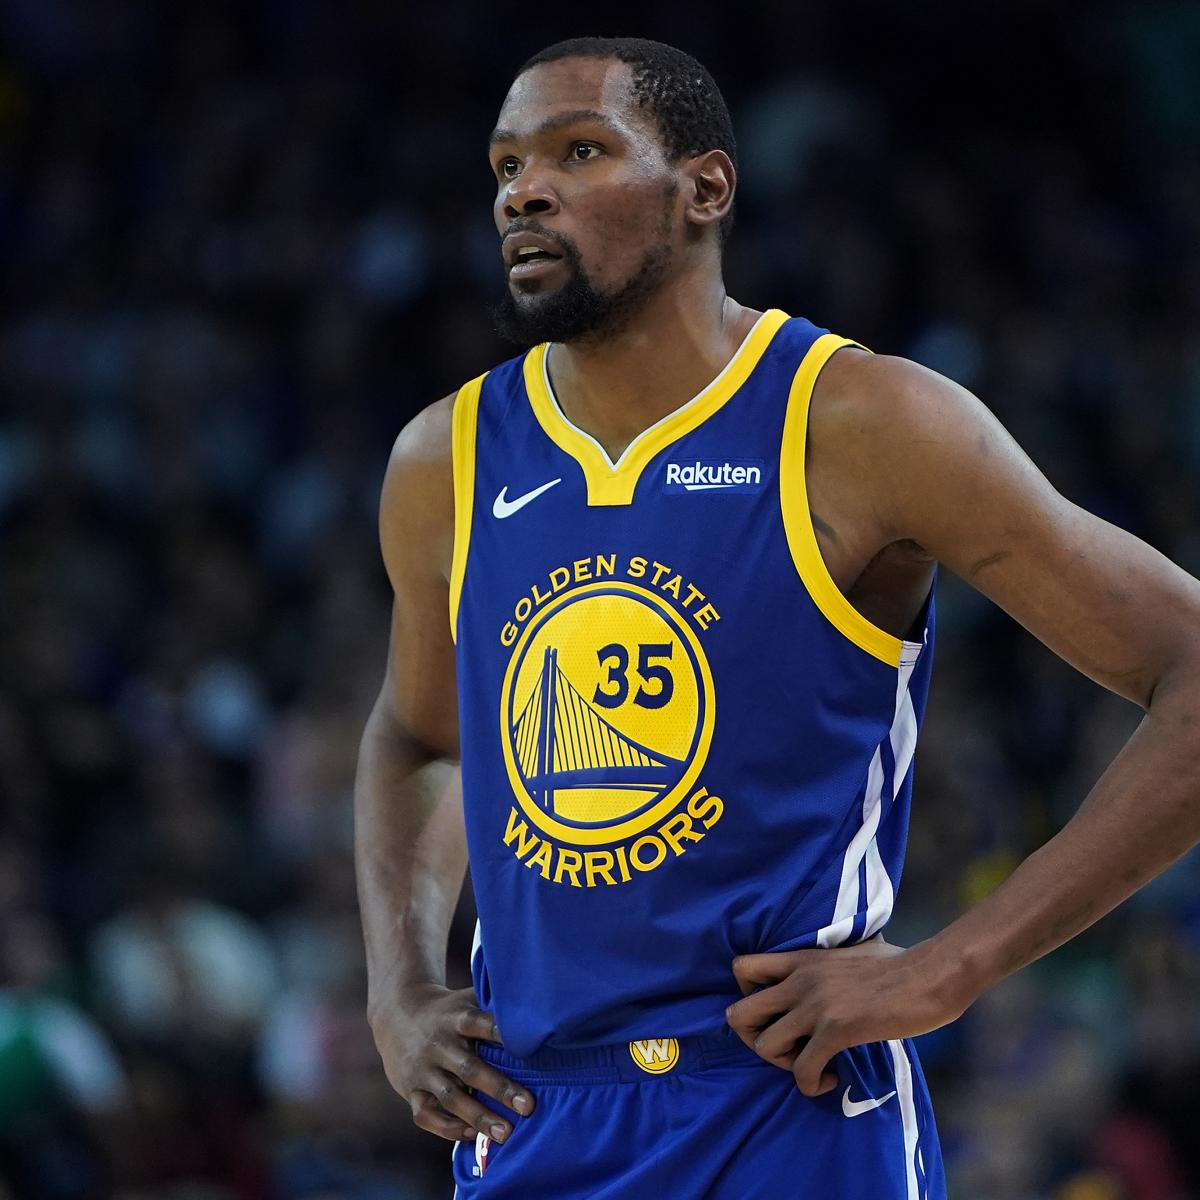 Rockets Vs Warriors Head To Head: Kevin Durant Won't Play In Warriors Vs. Thunder Because Of